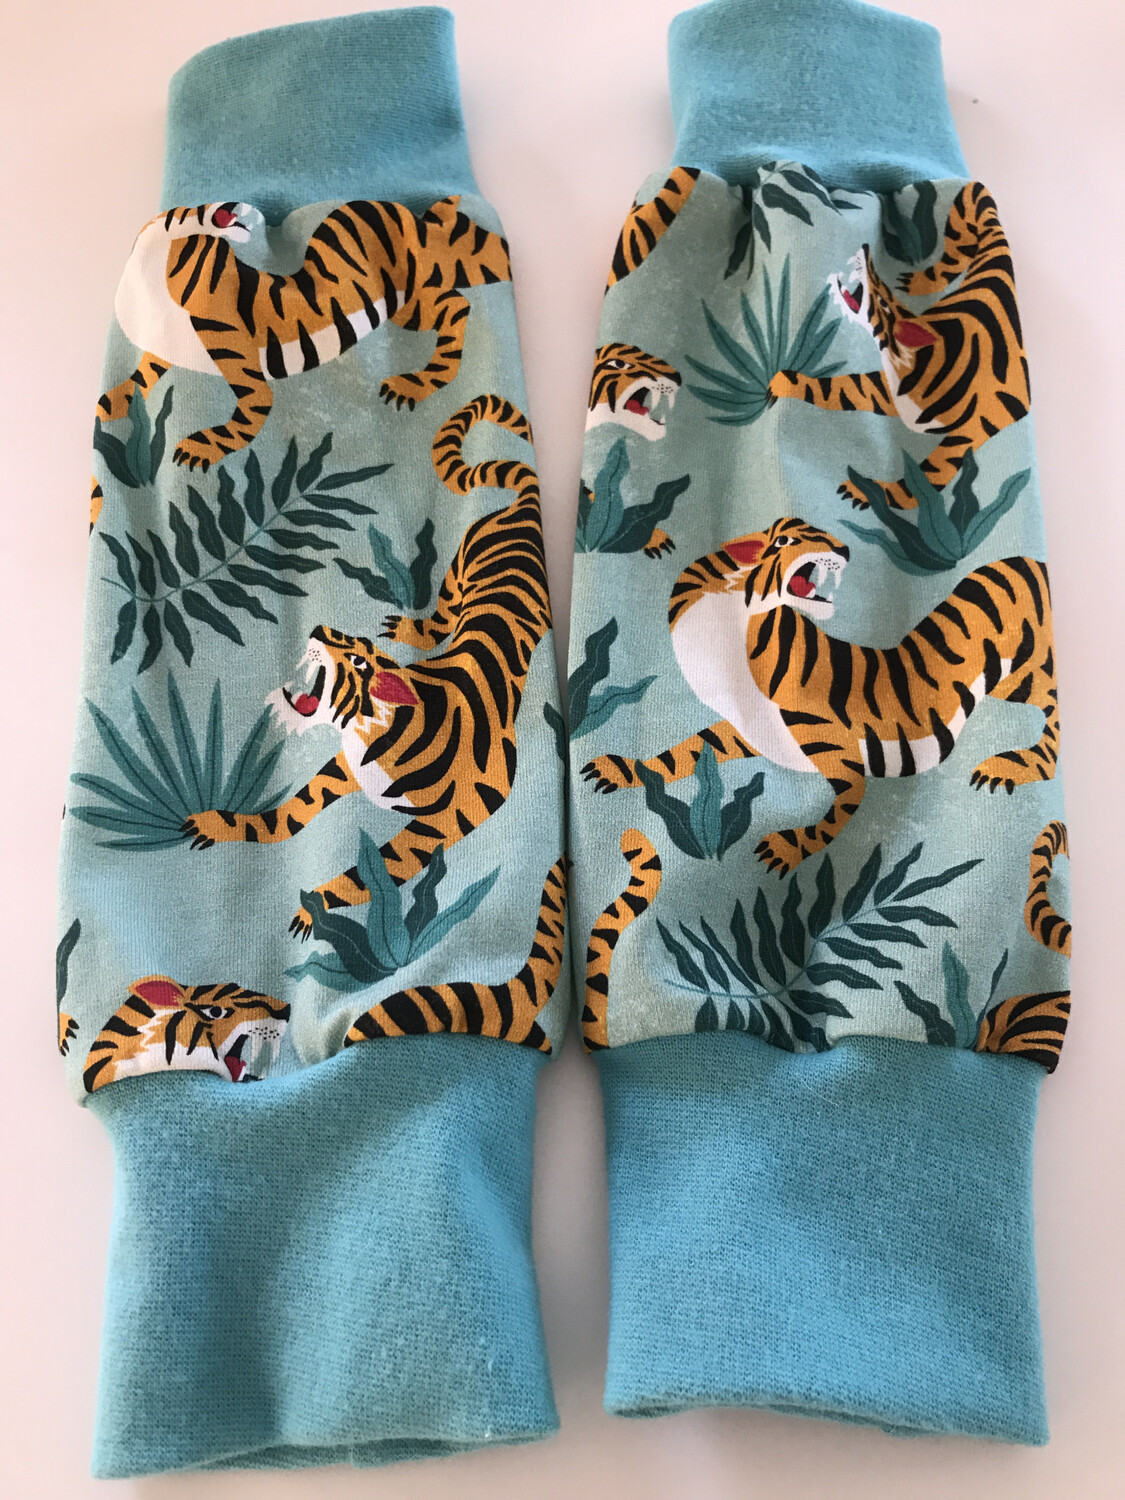 Turquoise Tiger Leg Warmers - alternative cuffs available